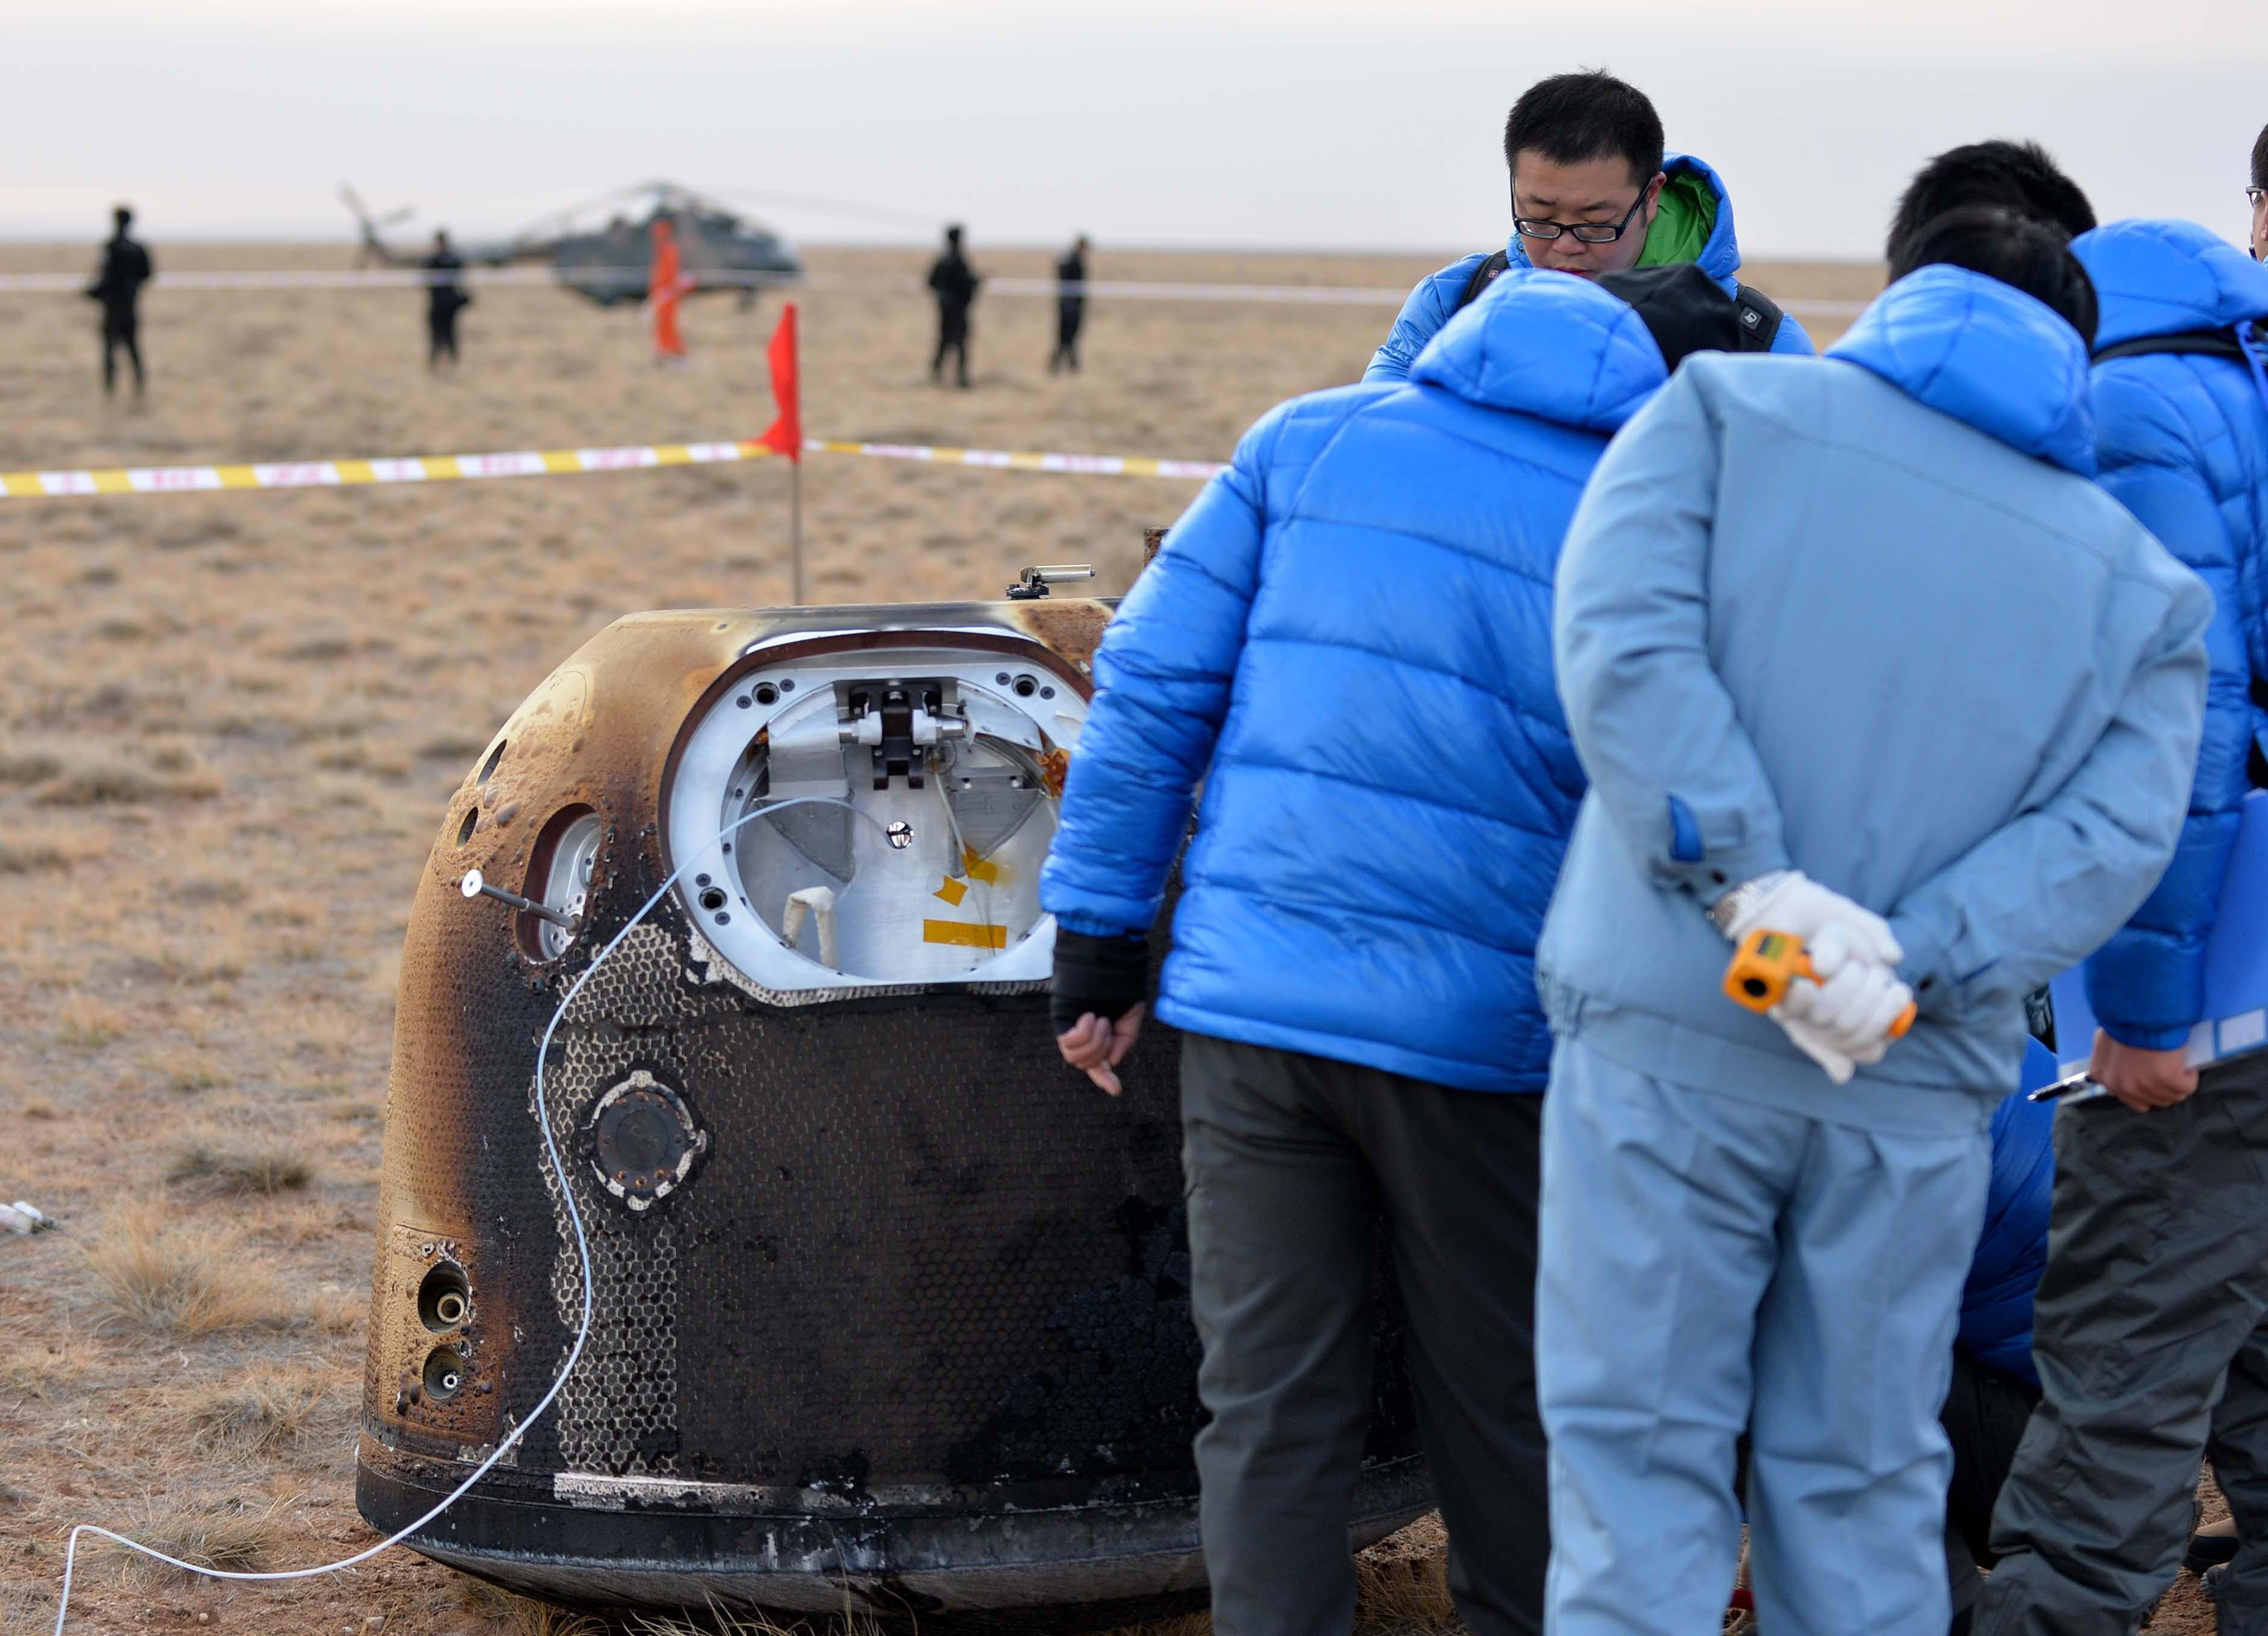 Chinese officials inspect a landing capsule deployed from the Chang'e 5 pathfinder probe after landing Oct. 31. Credit: Xinhua